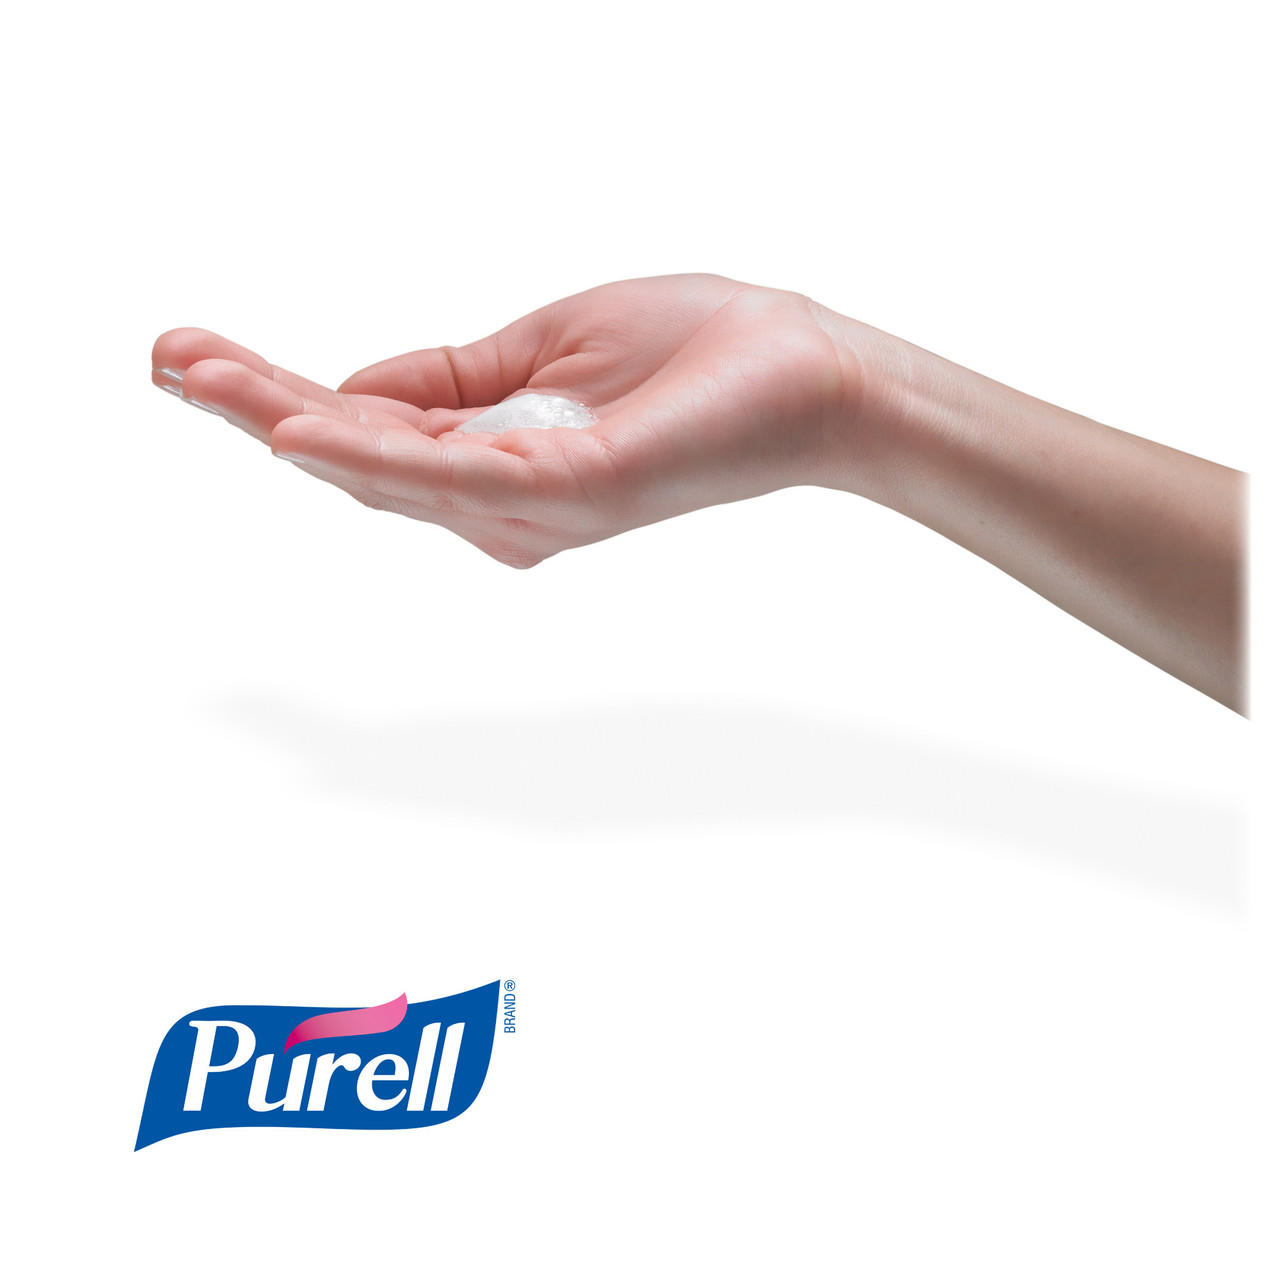 PURELL® TFX Hand Sanitizer Dispenser Refill - 40.6 fl oz (1200 mL) - Kill Germs - Hand, Skin - Clear - Moisturizing, Antimicrobial - 4 / Carton